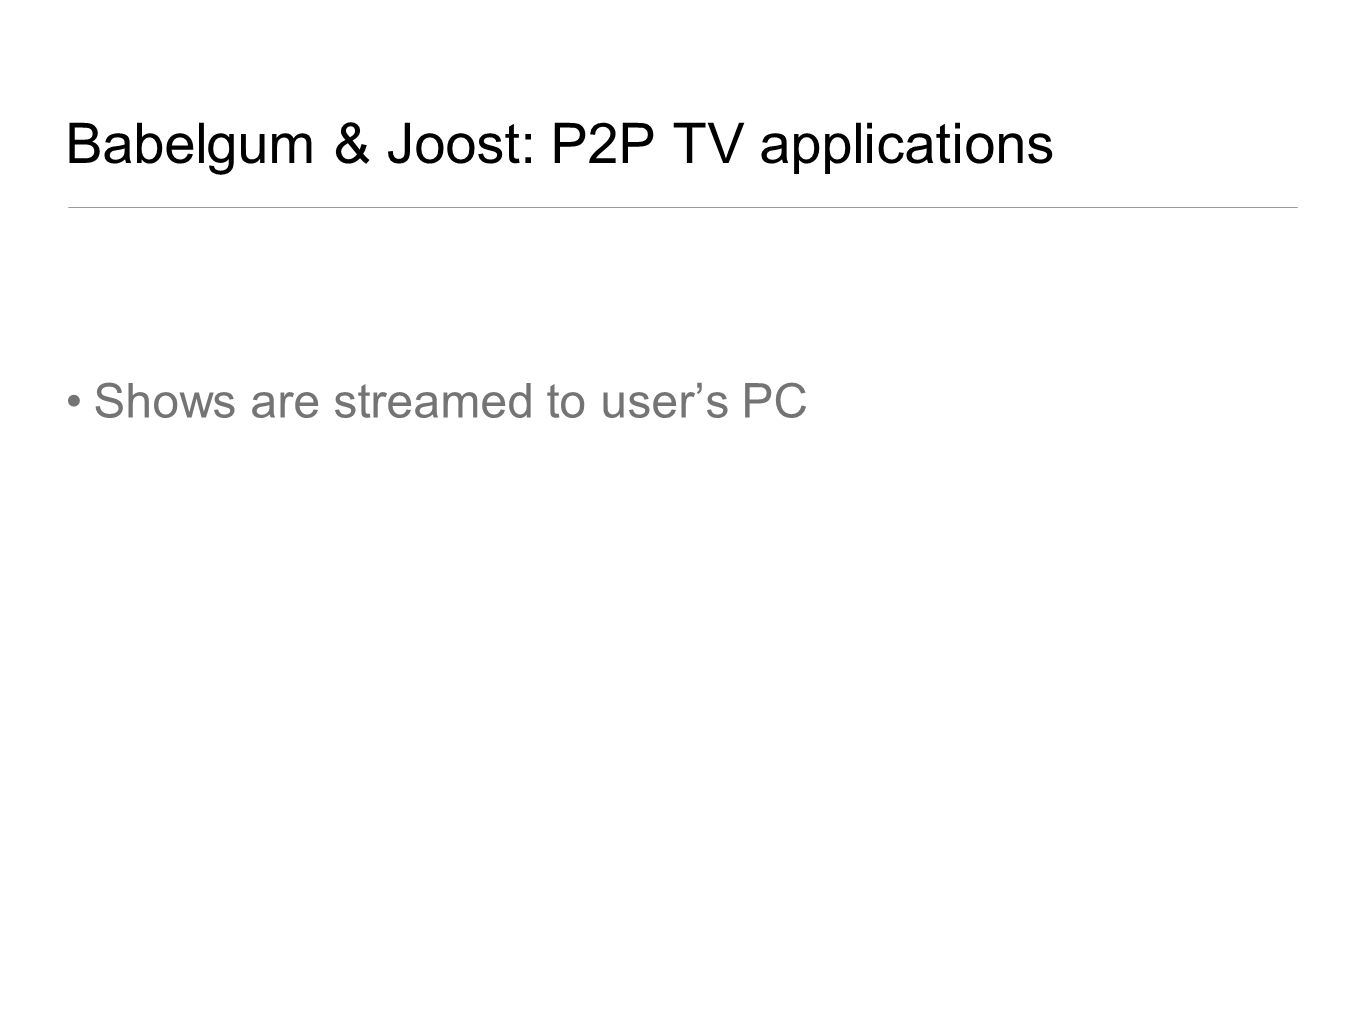 Babelgum & Joost: P2P TV applications Shows are streamed to users PC